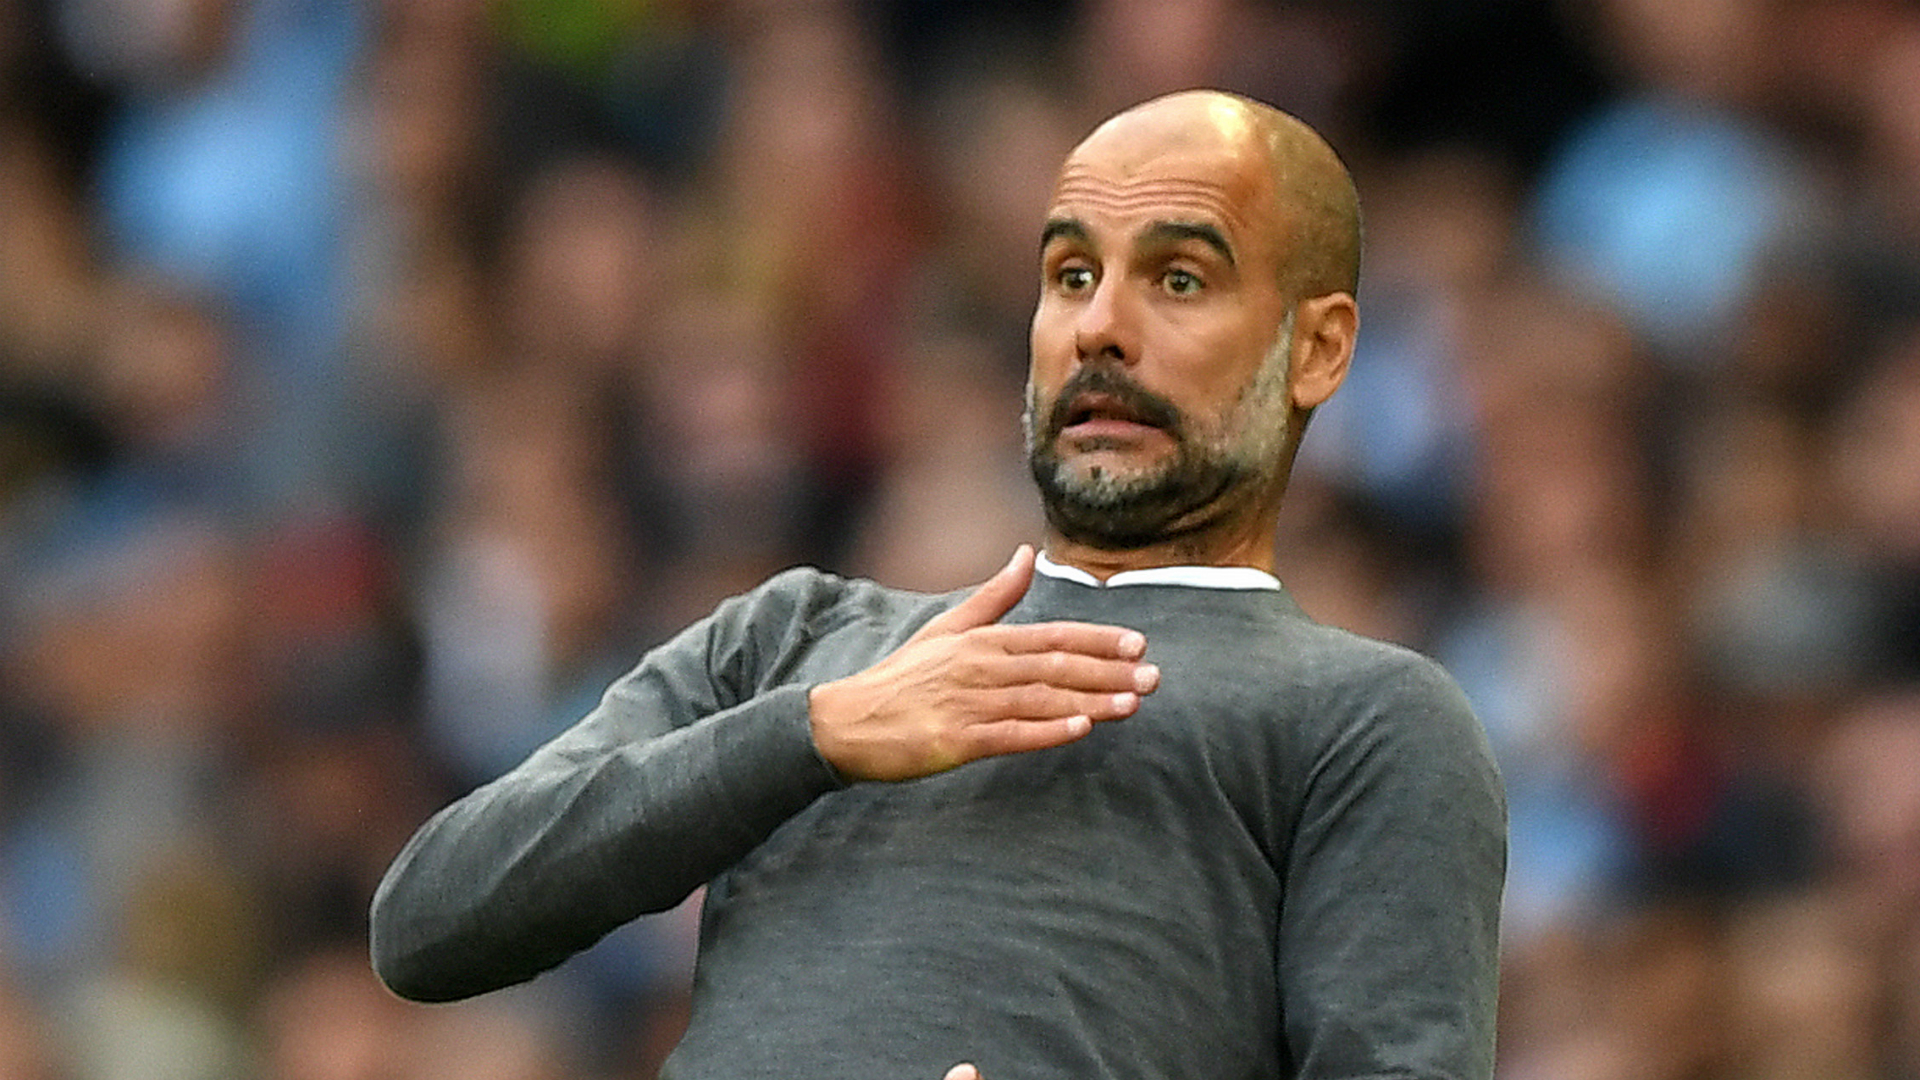 I couldn't manage another English team, says City boss Guardiola